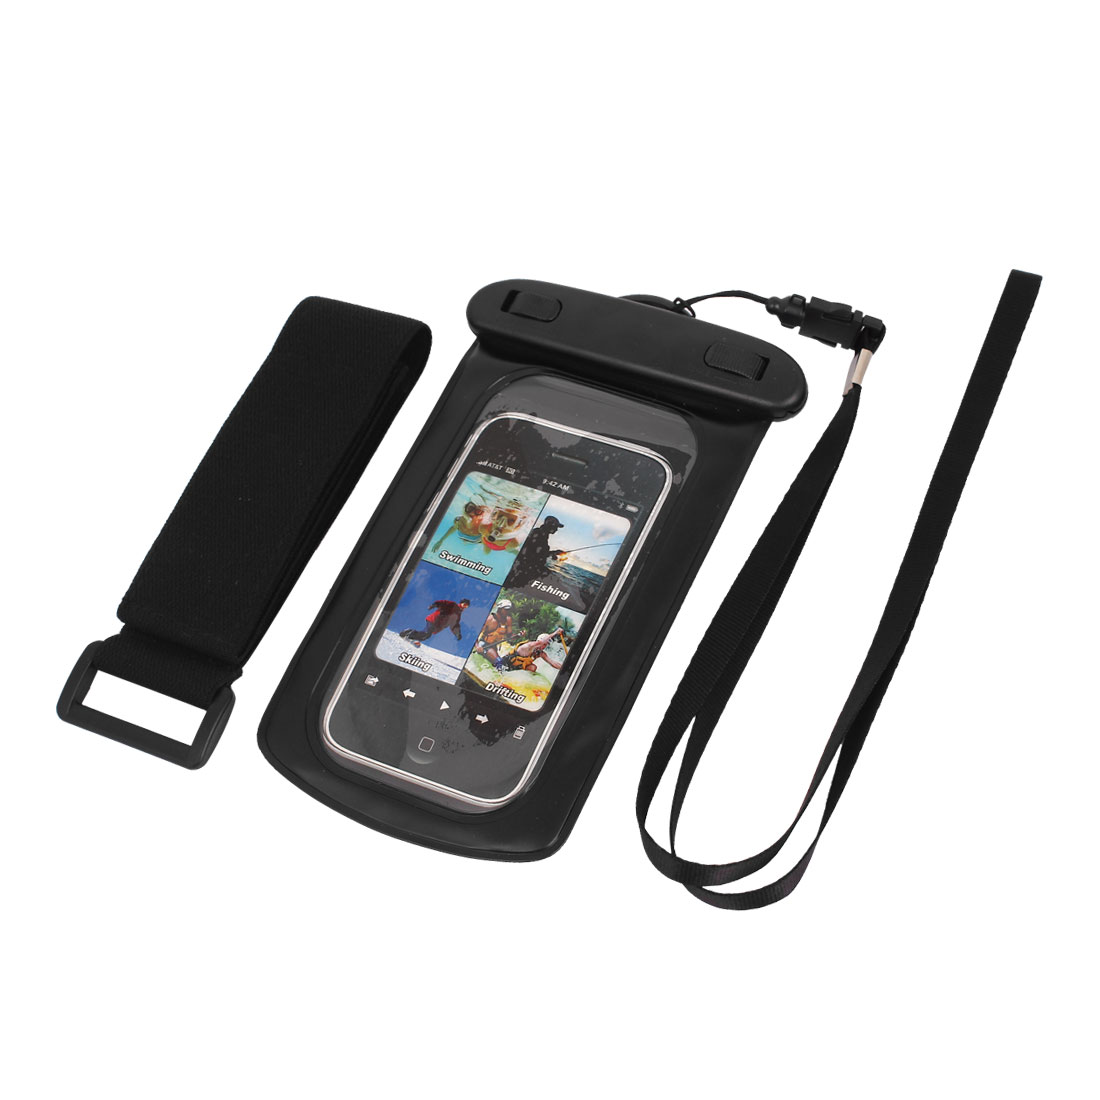 "Waterproof Case Dry Bag Skin Cover Pouch + Earplug Black for 3.5"" Cell Phone"